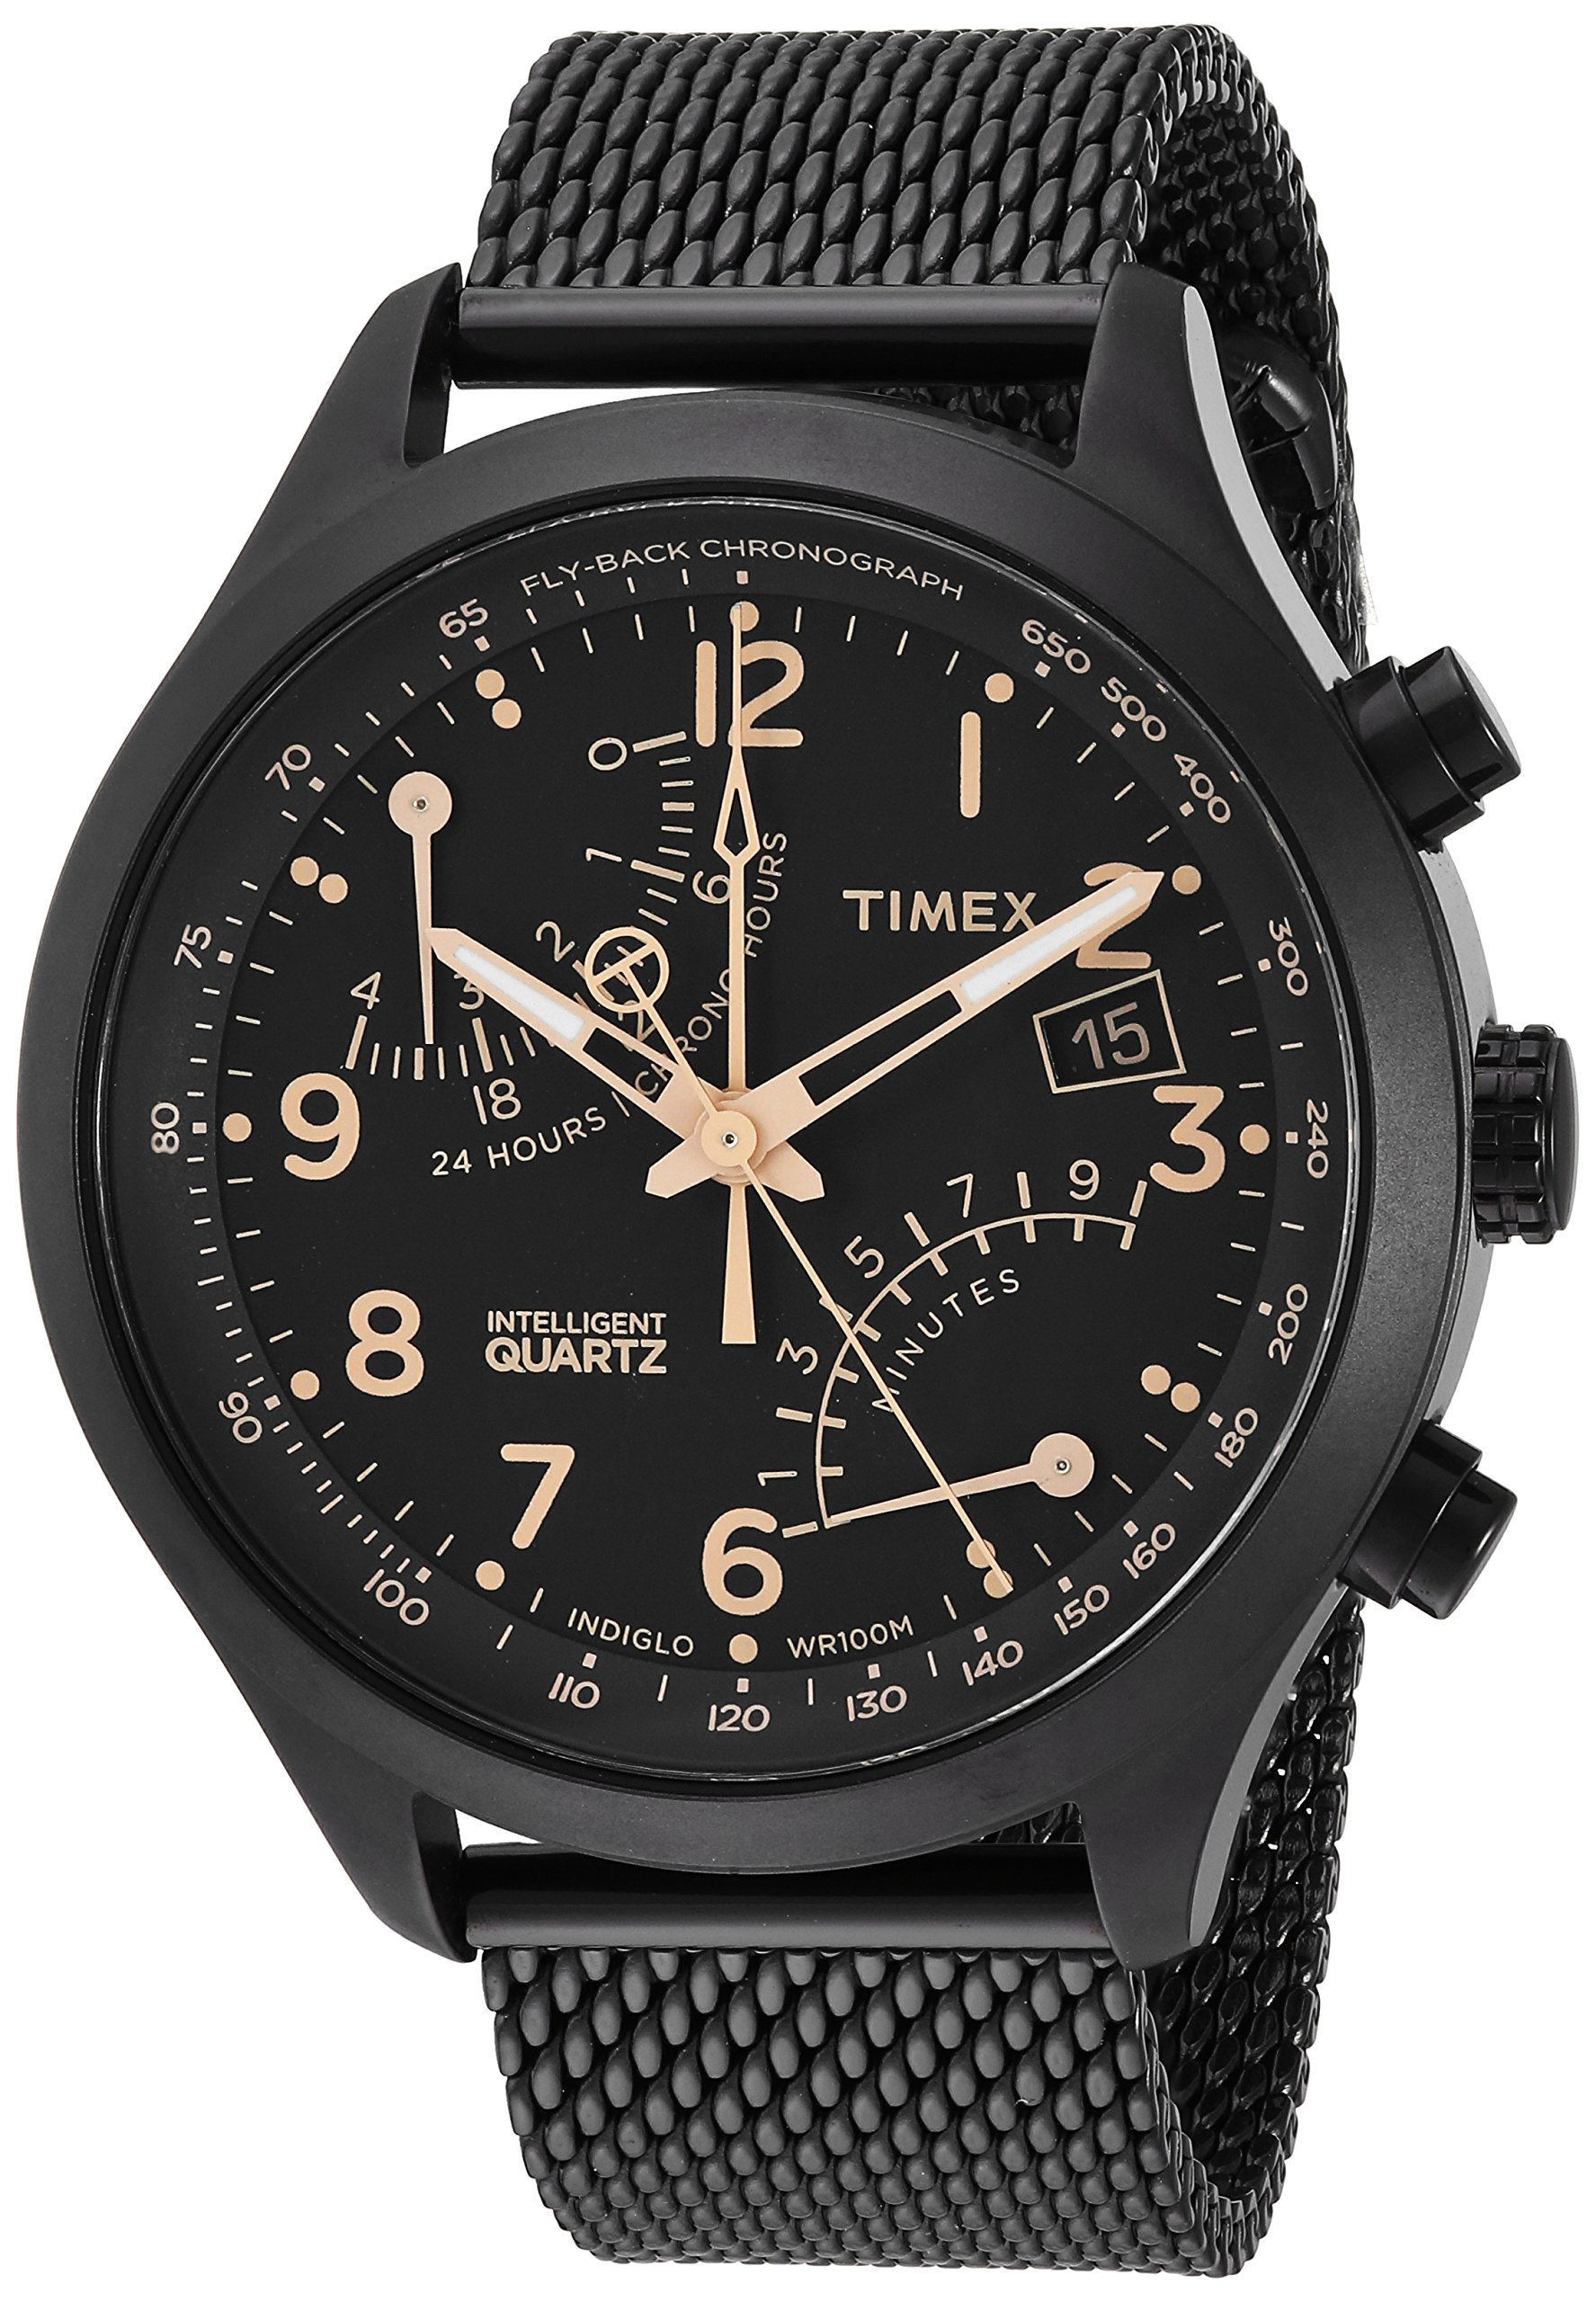 Timex Men's TW2R55000 Intelligent Quartz Fly-Back Chronograph Black Stainless Steel Mesh Bracelet Watch by Timex